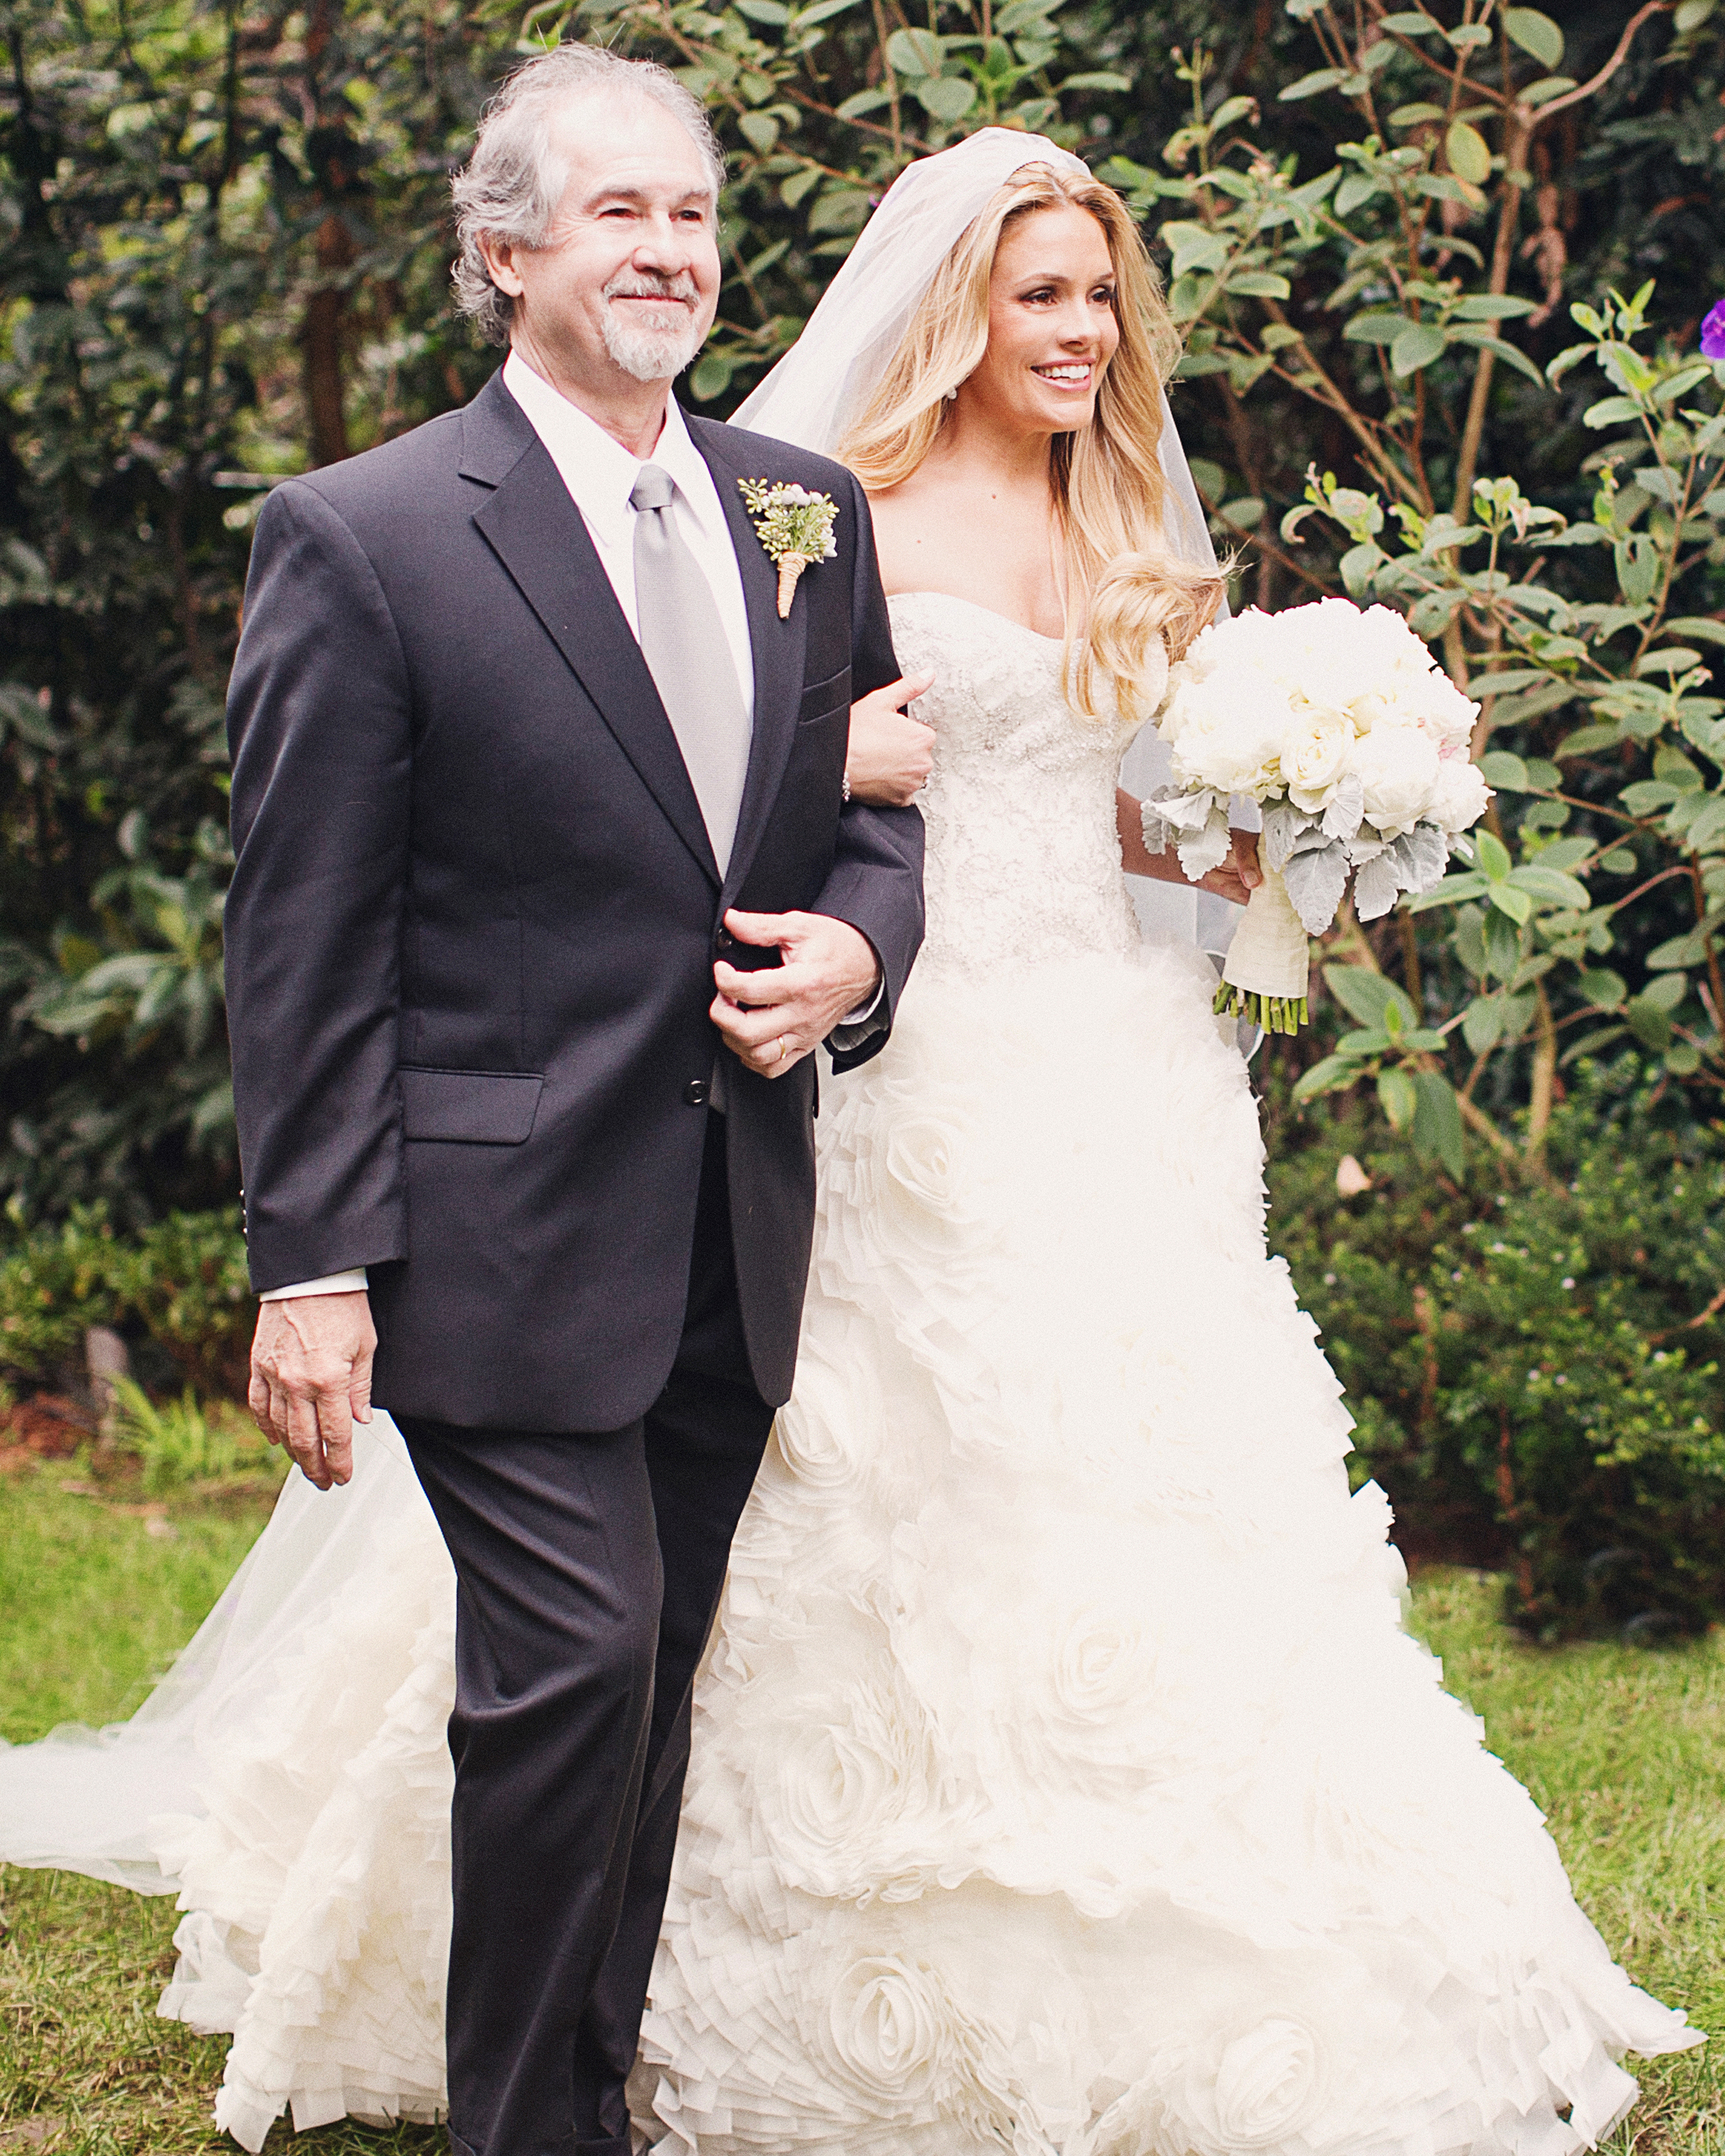 cacee-donald-bride-father-074-wds110101.jpg